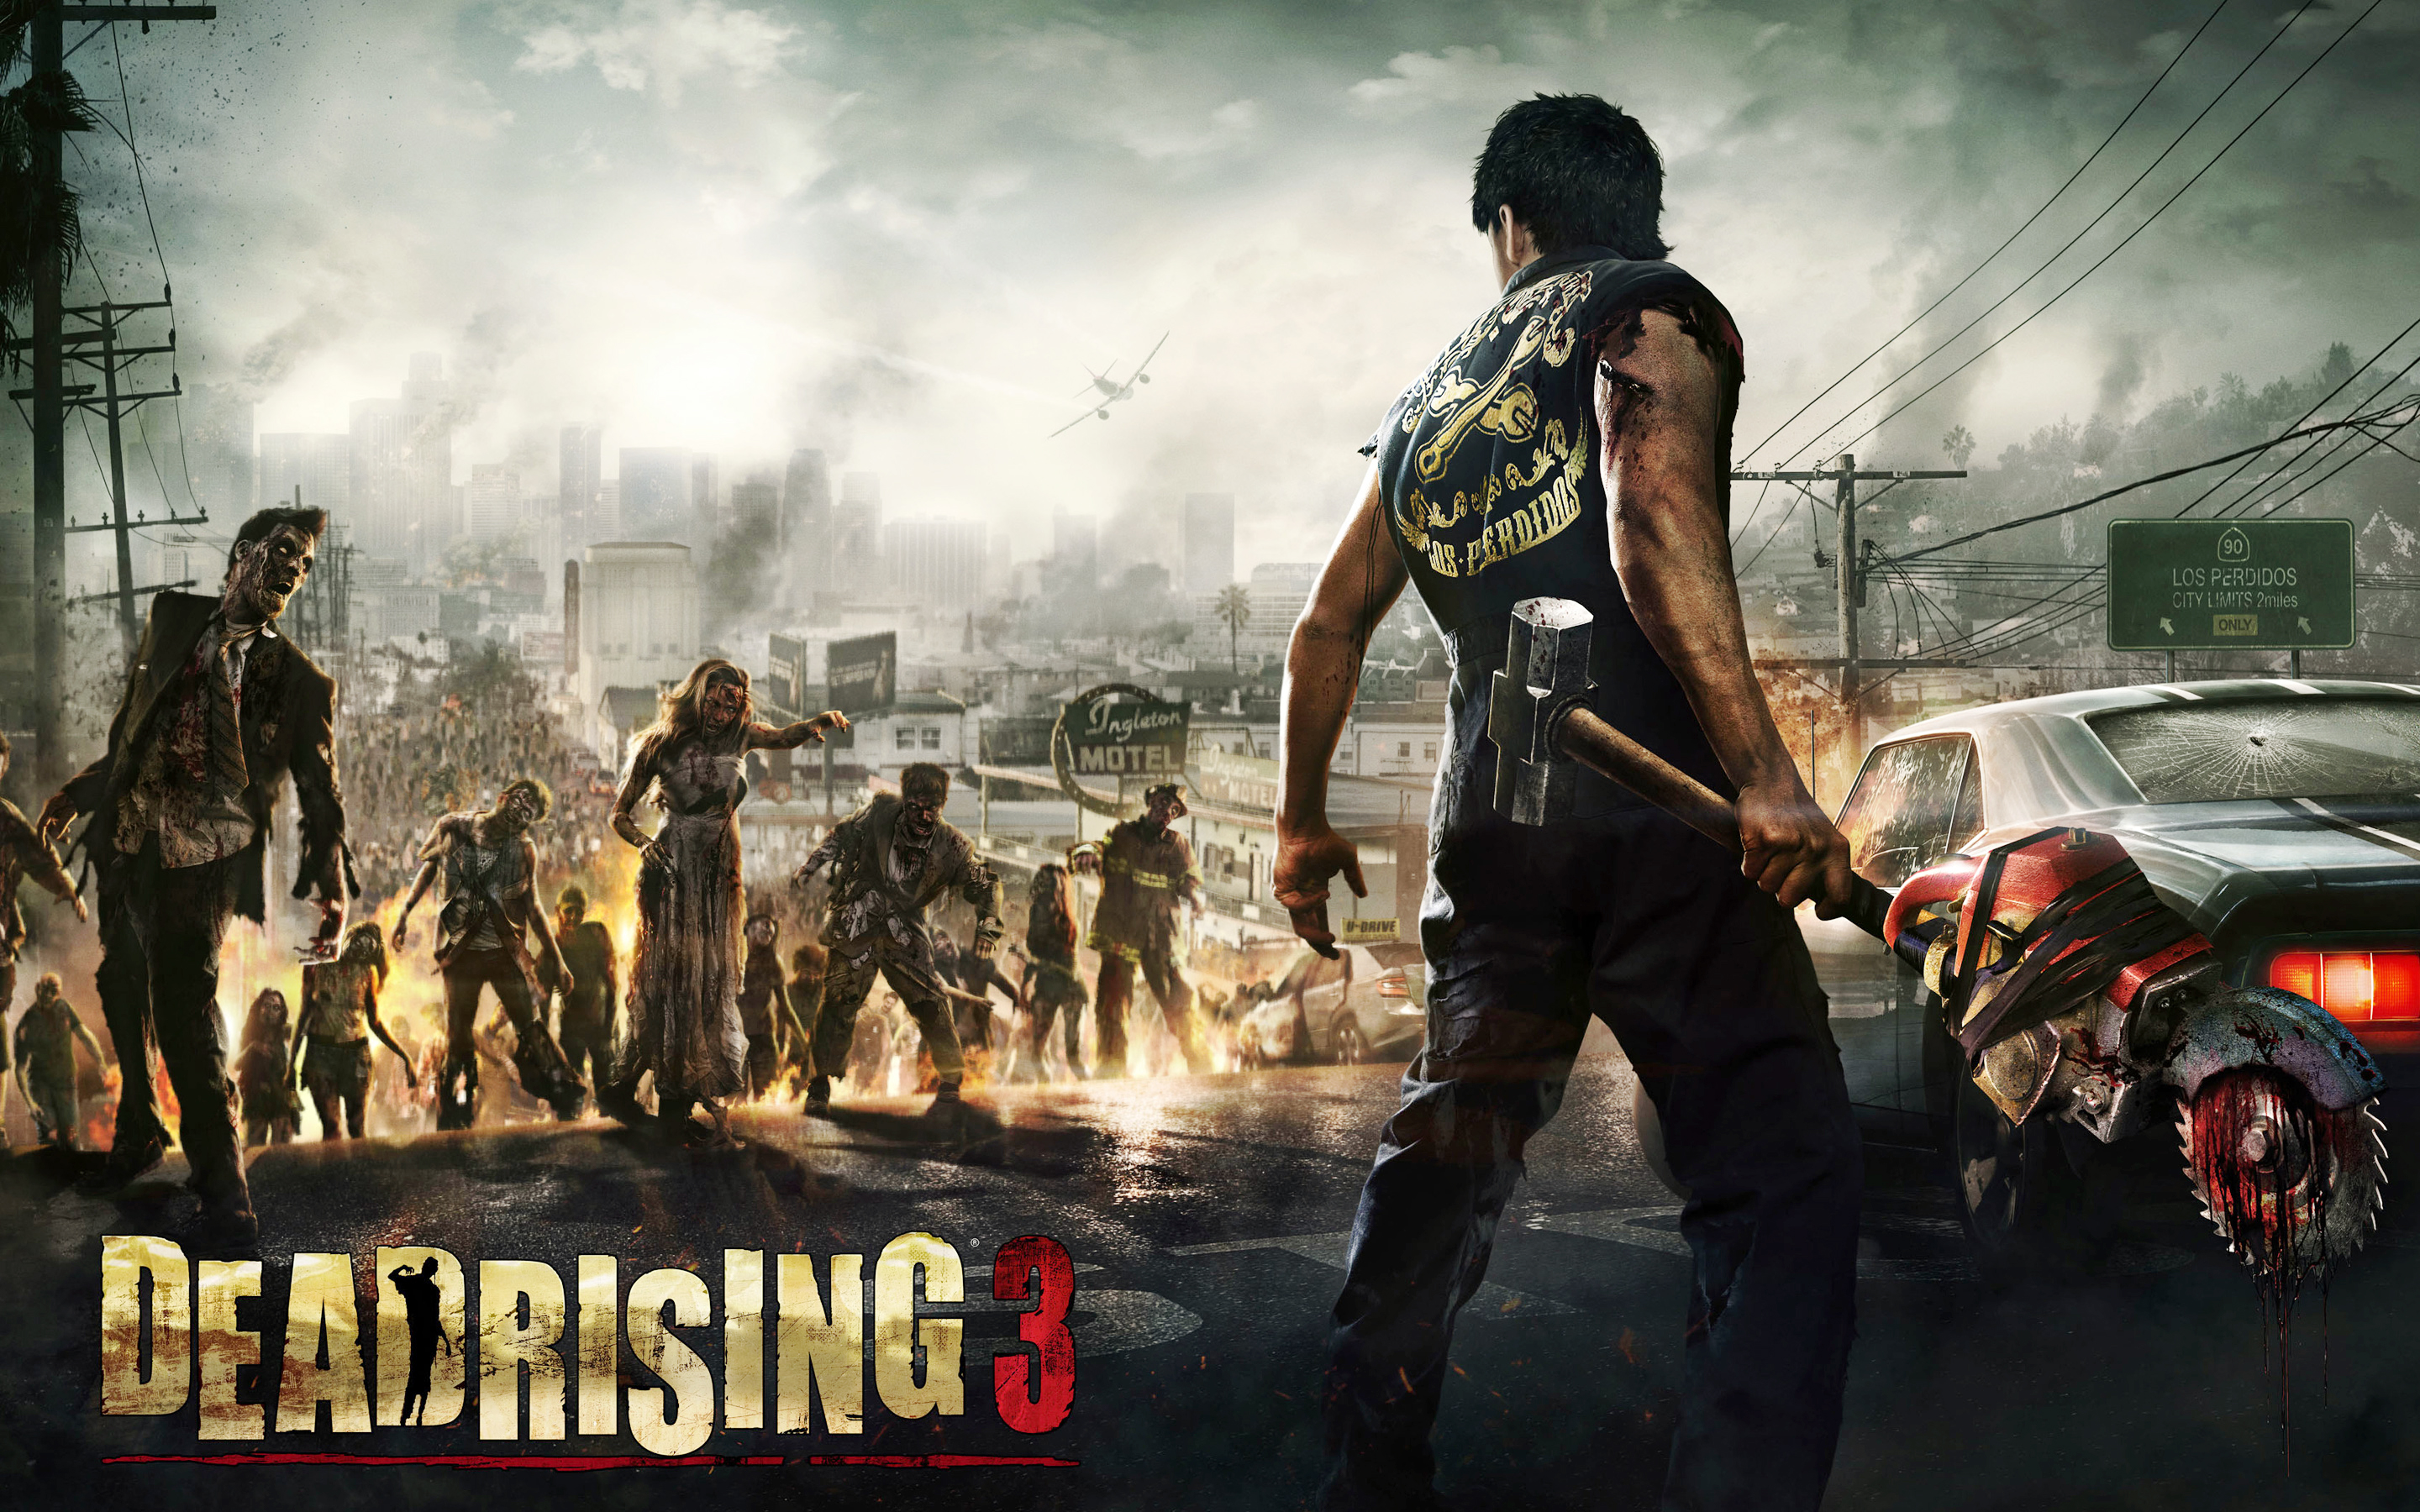 Dead rising 3 review xbox one my view screen dead rising 3 review xbox one malvernweather Choice Image